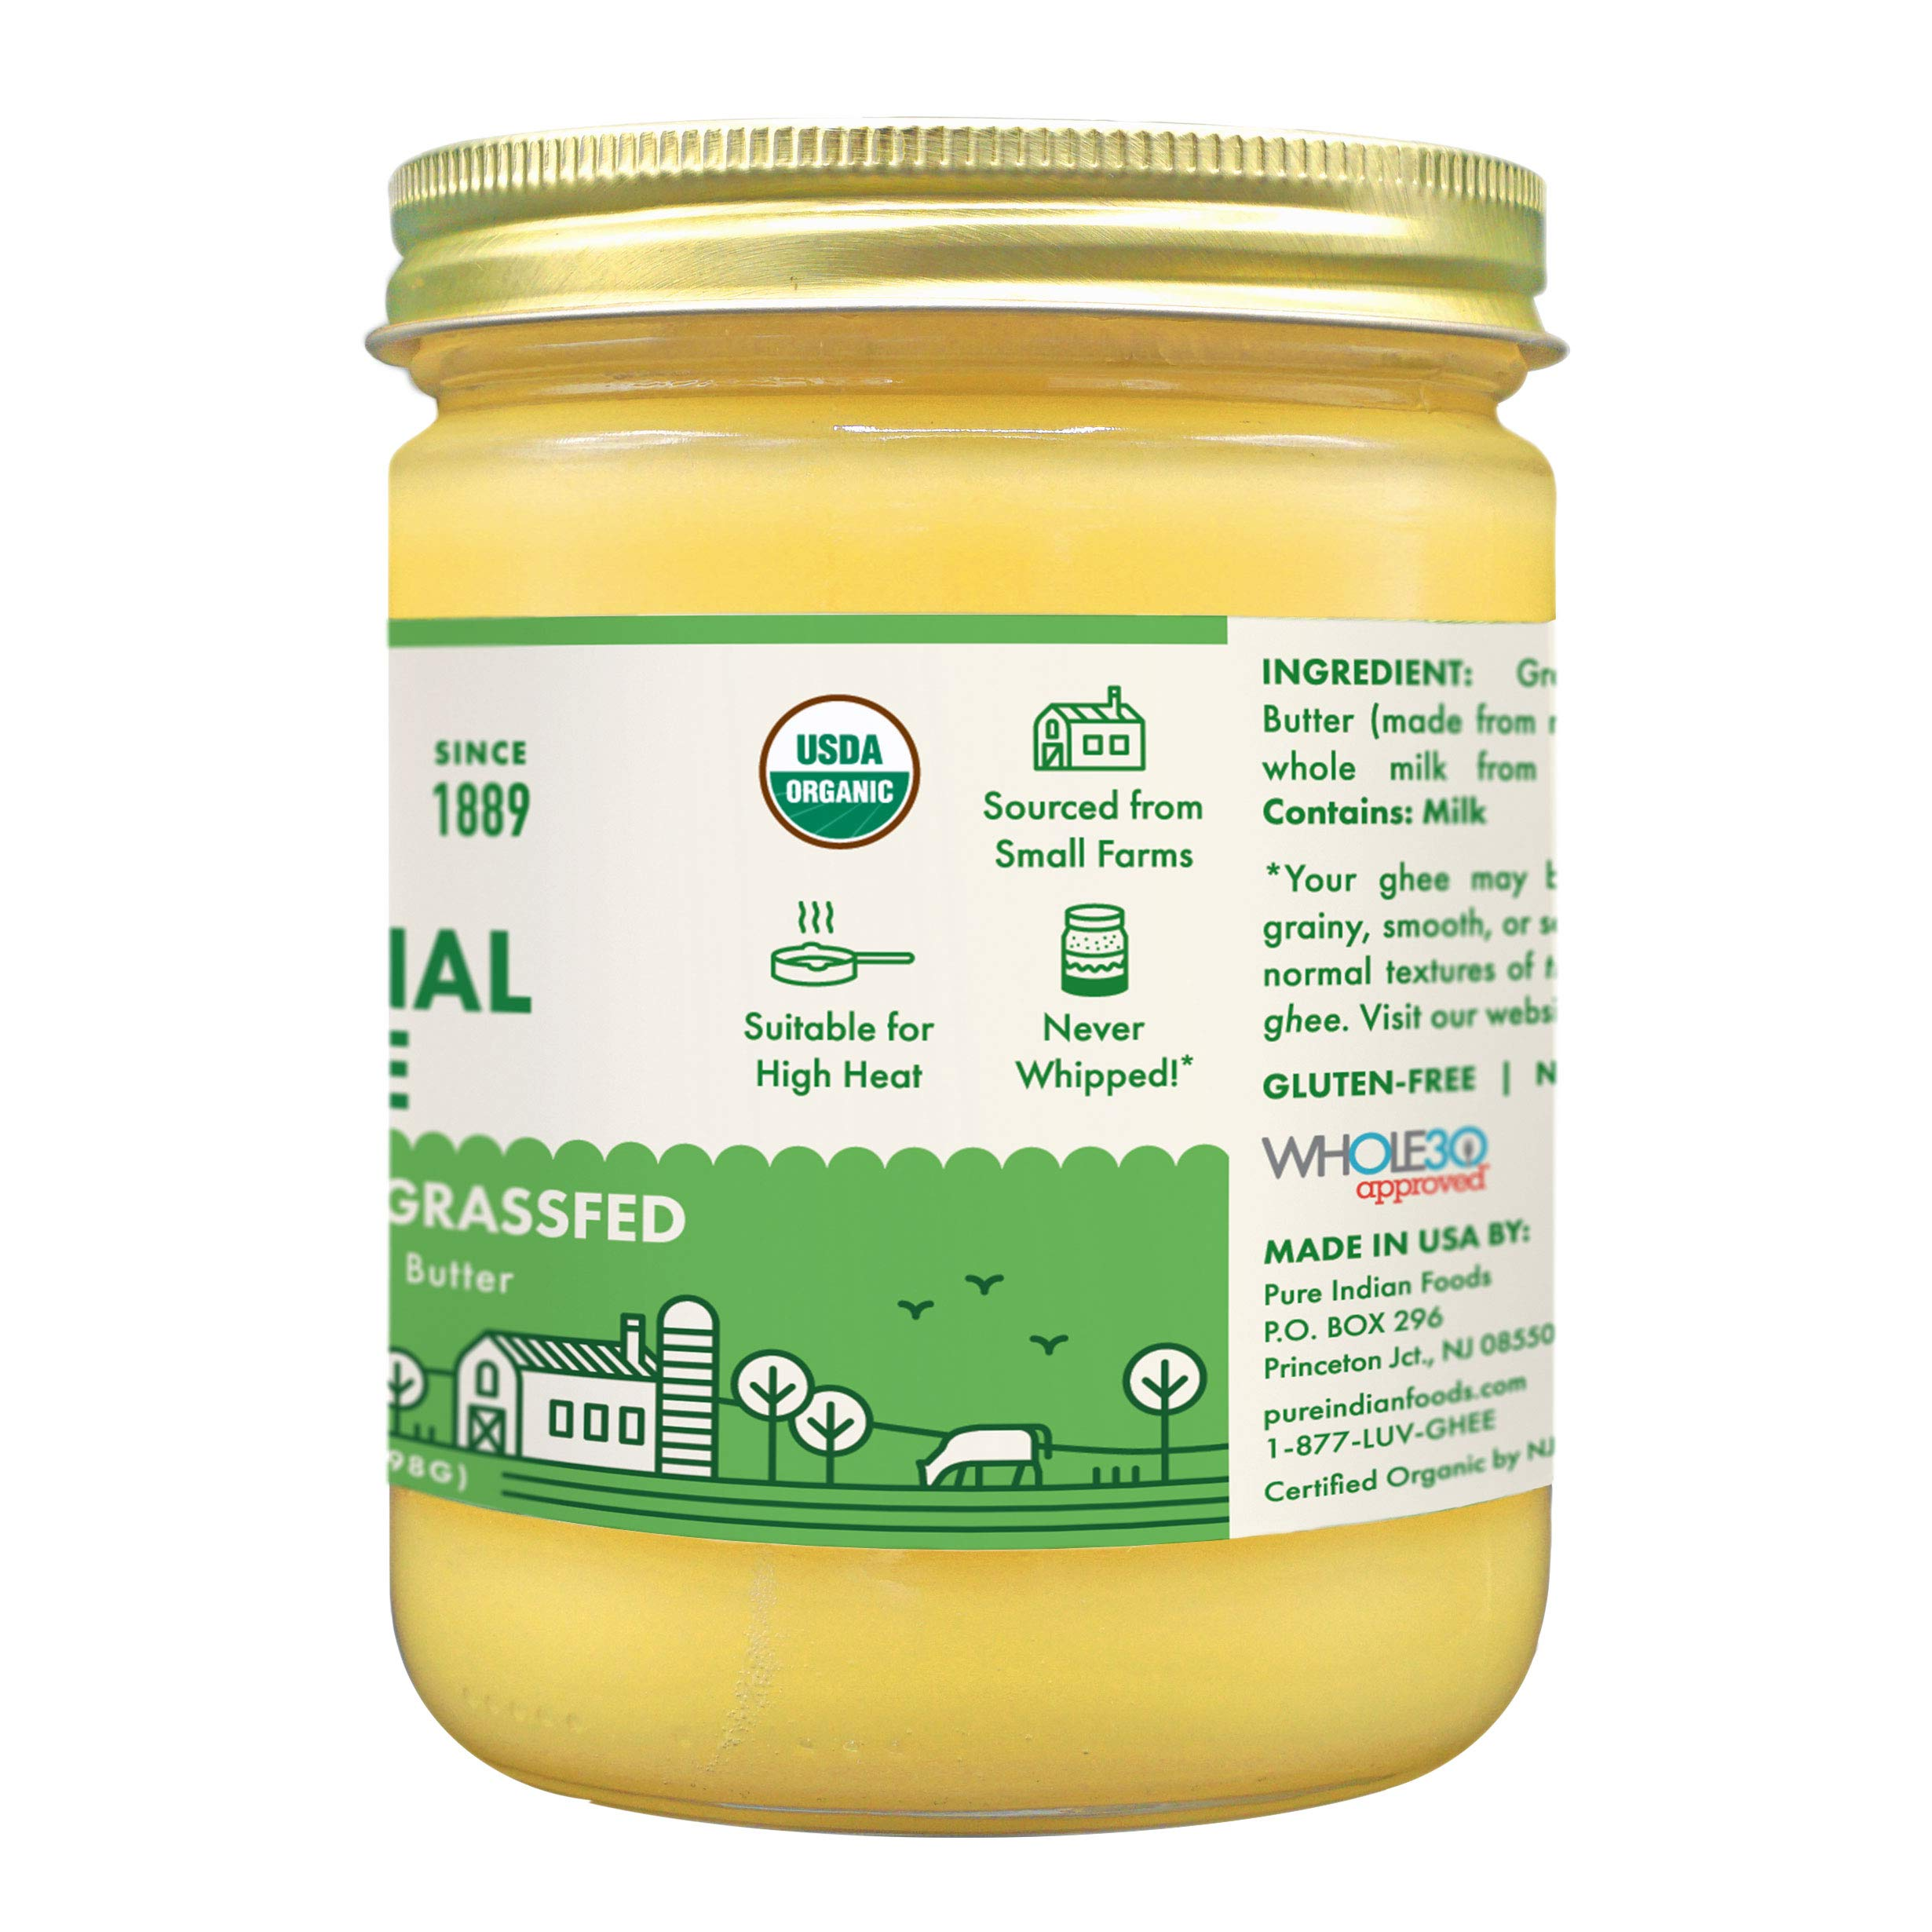 Grassfed Organic Ghee 14 oz (One Pint or 16 fl oz) by Pure Indian Foods (Image #2)